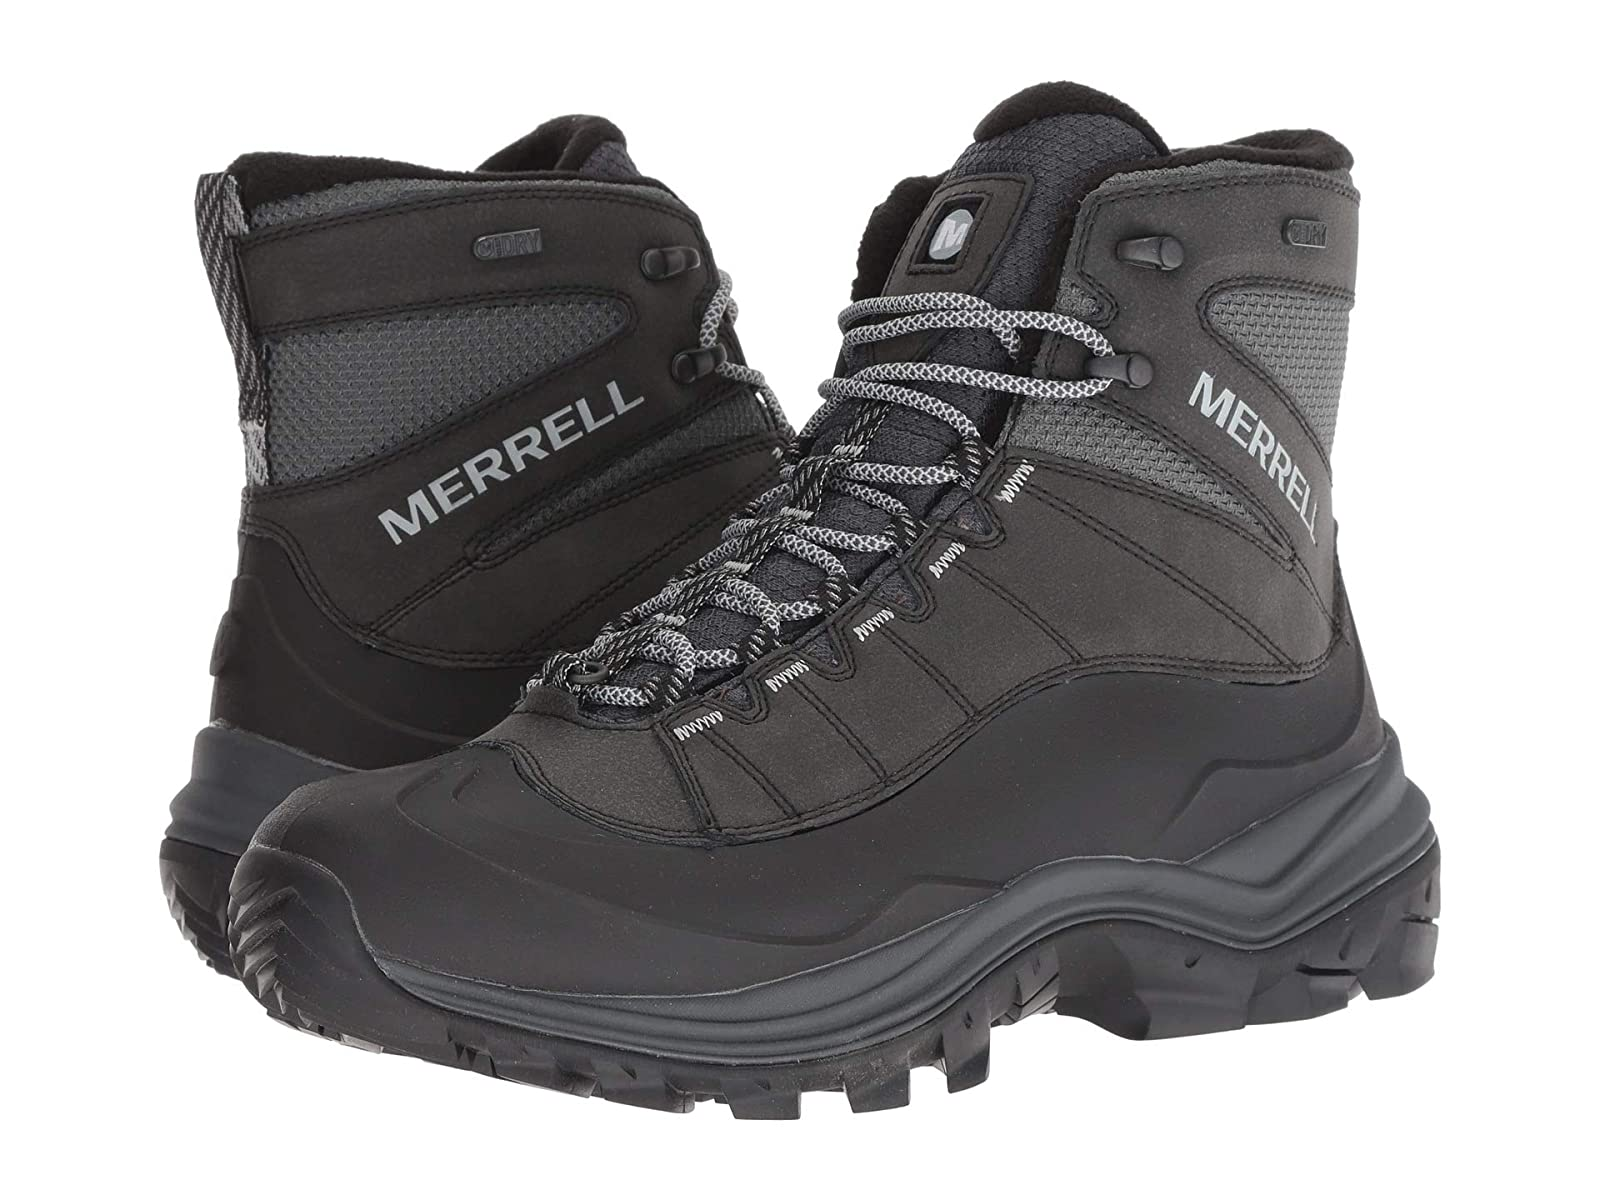 "Gentlemen/Ladies:Merrell Thermo Chill 6"" Shell Presale Waterproof:New Product Presale Shell f4c765"